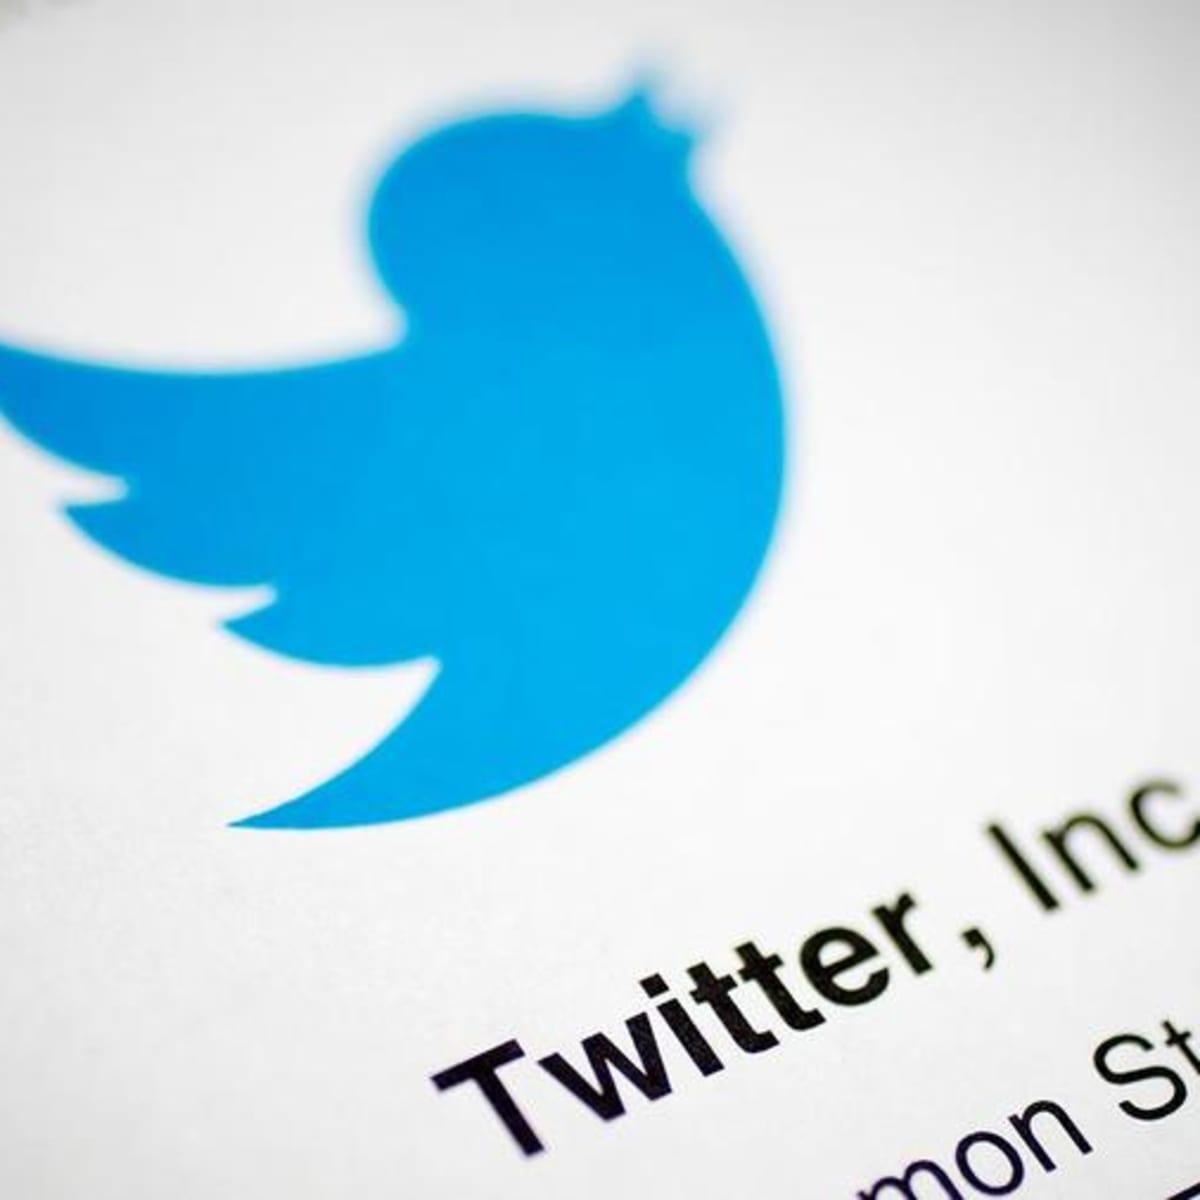 Should You Buy Twitter S Stock Price That S Exploding Today Thestreet